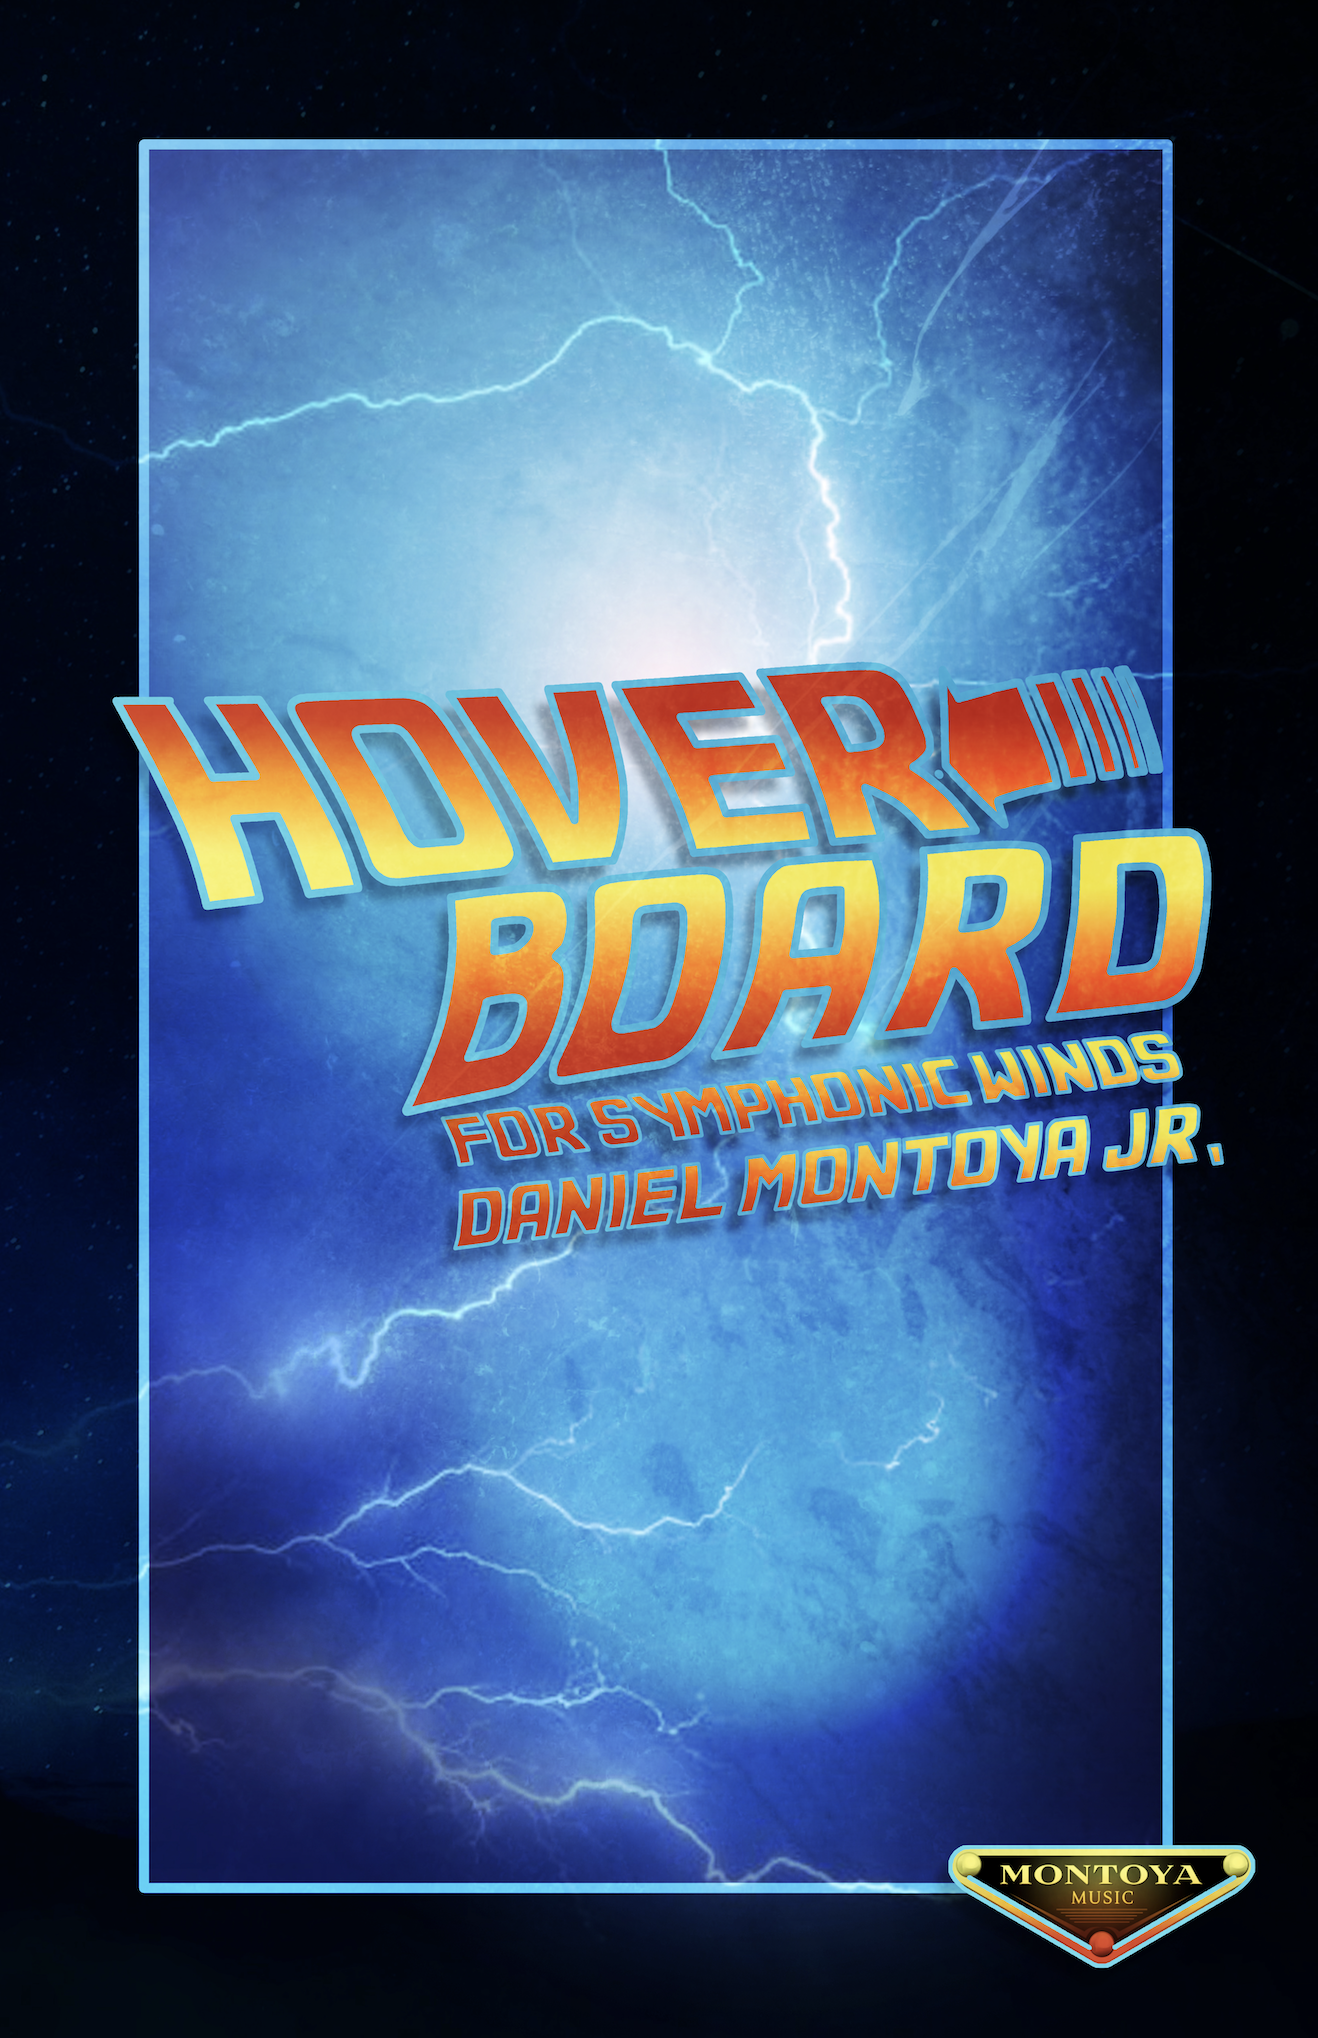 Hoverboard by Daniel Montoya Jr.